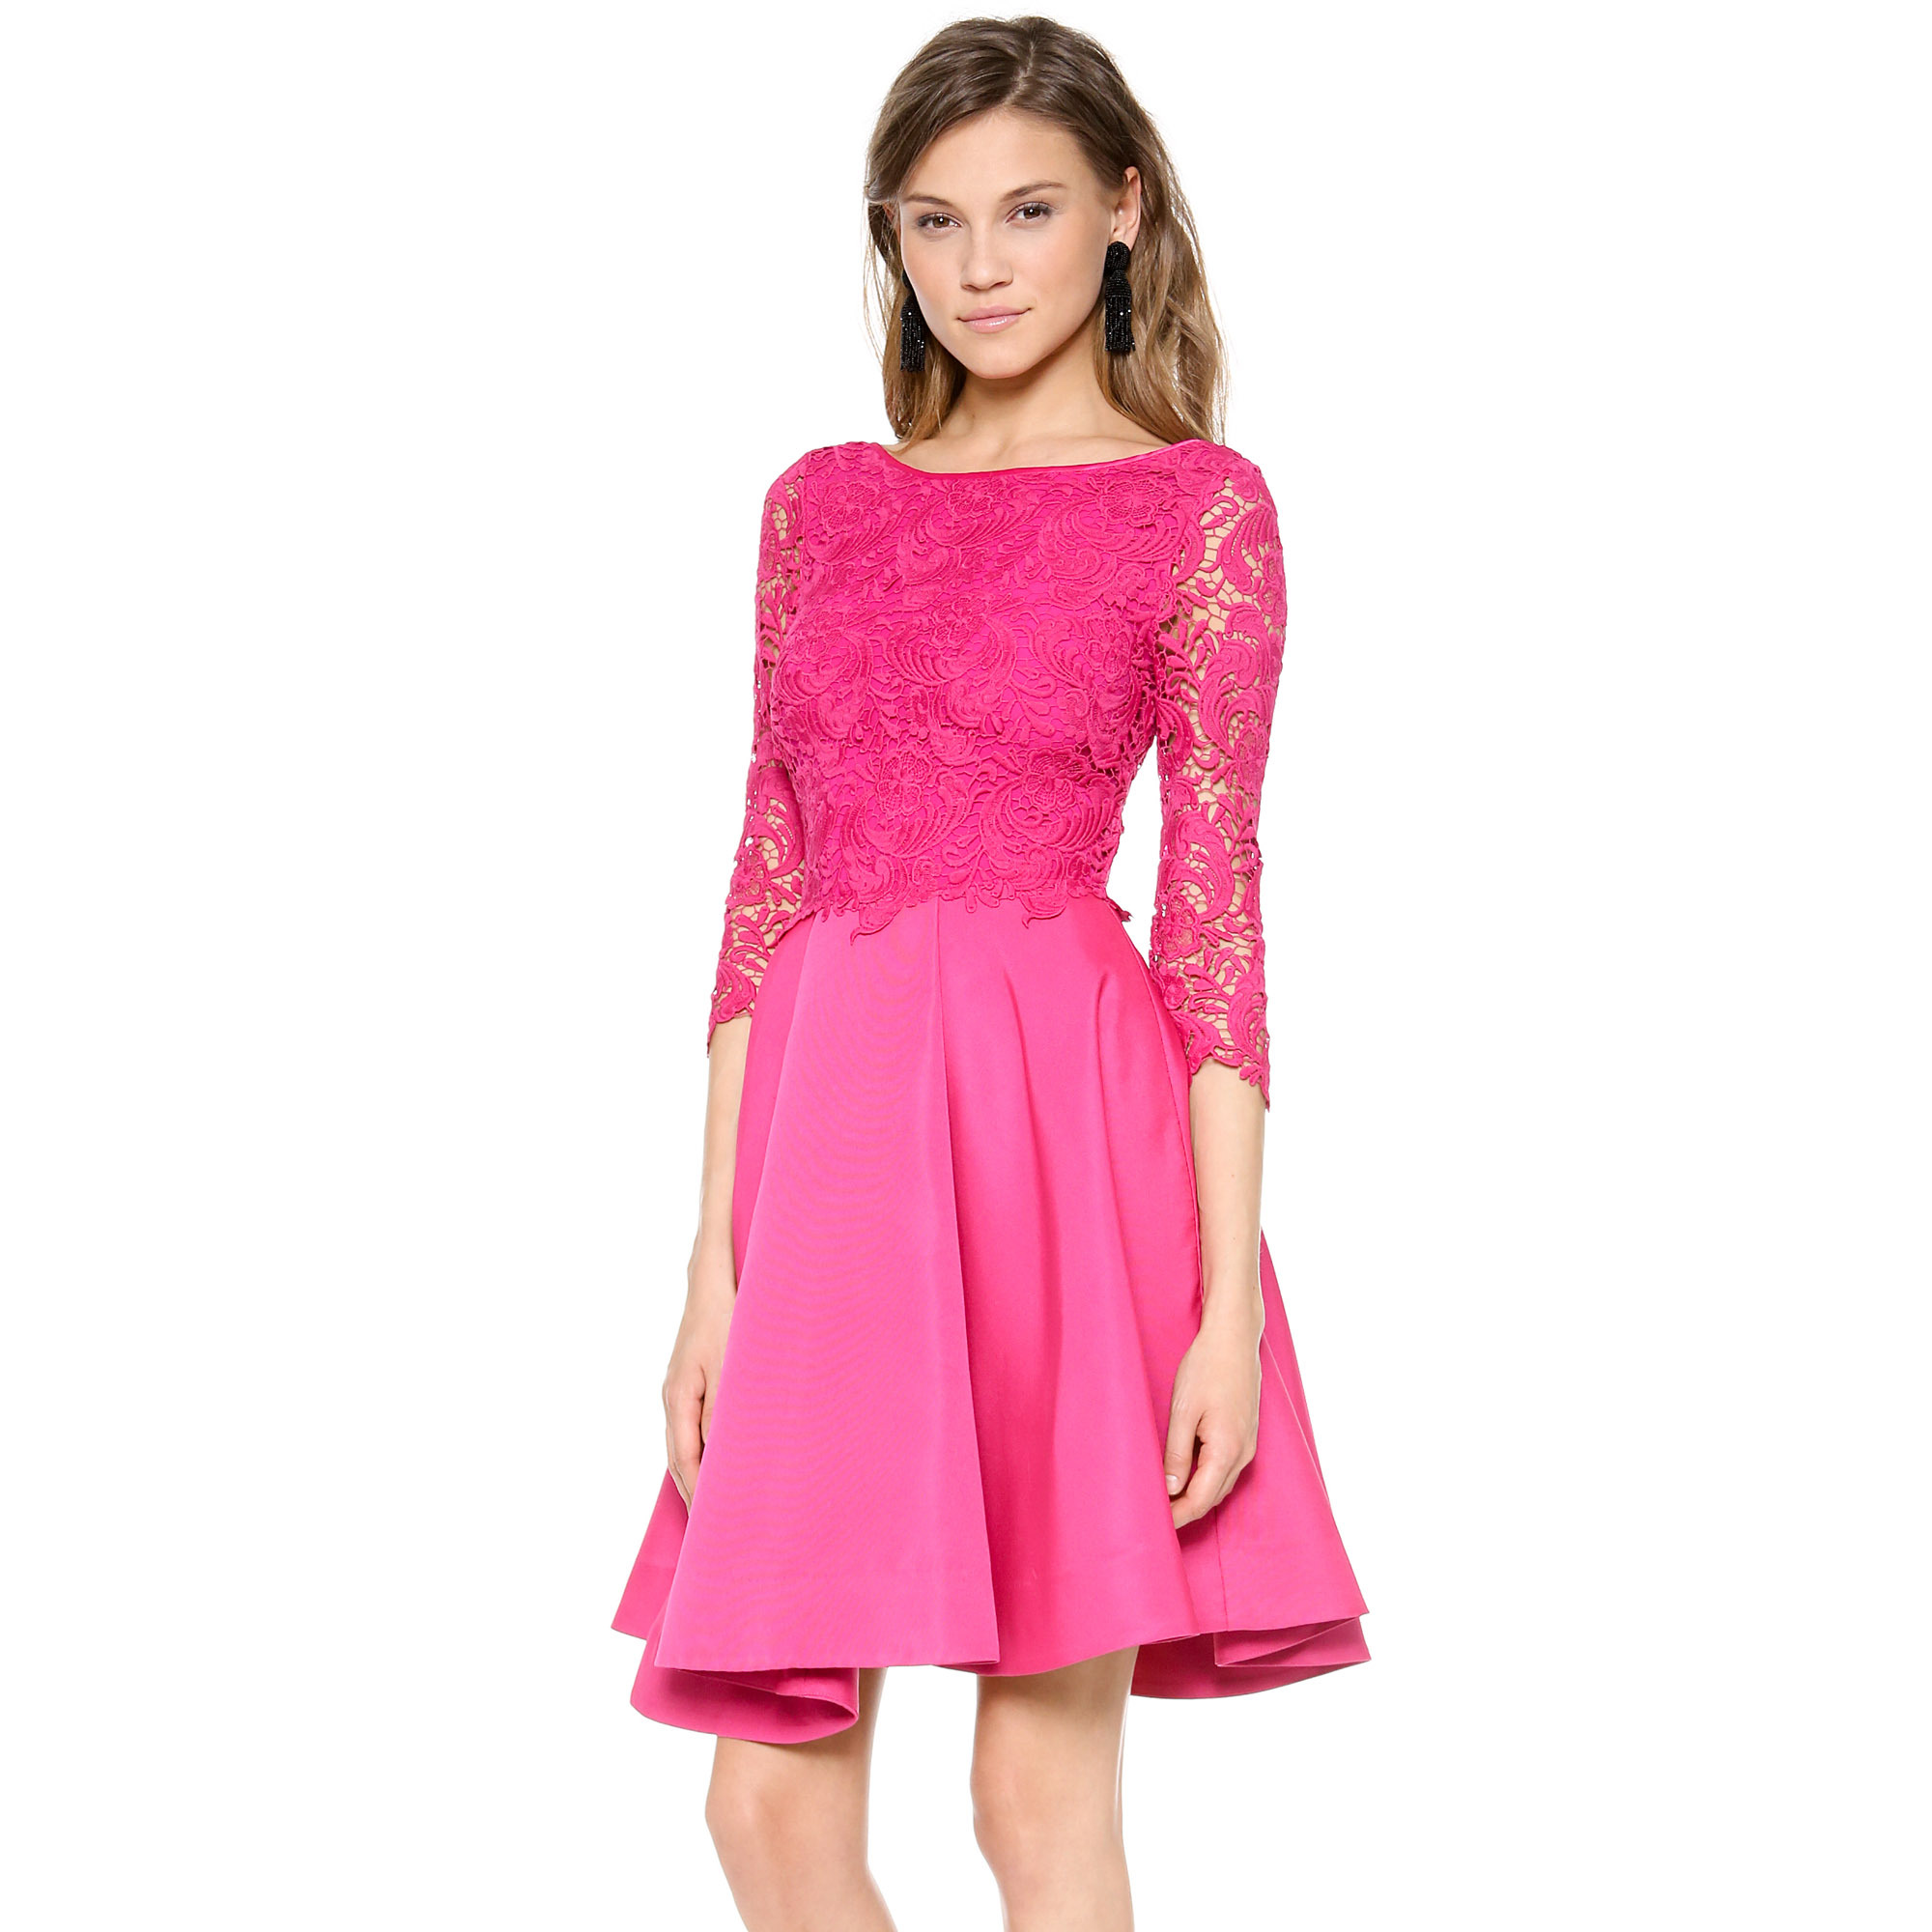 Aristocratic flavor grosgrain stitching exquisite tailoring convex transparent lace A- Sleeve Dress haoduoyi